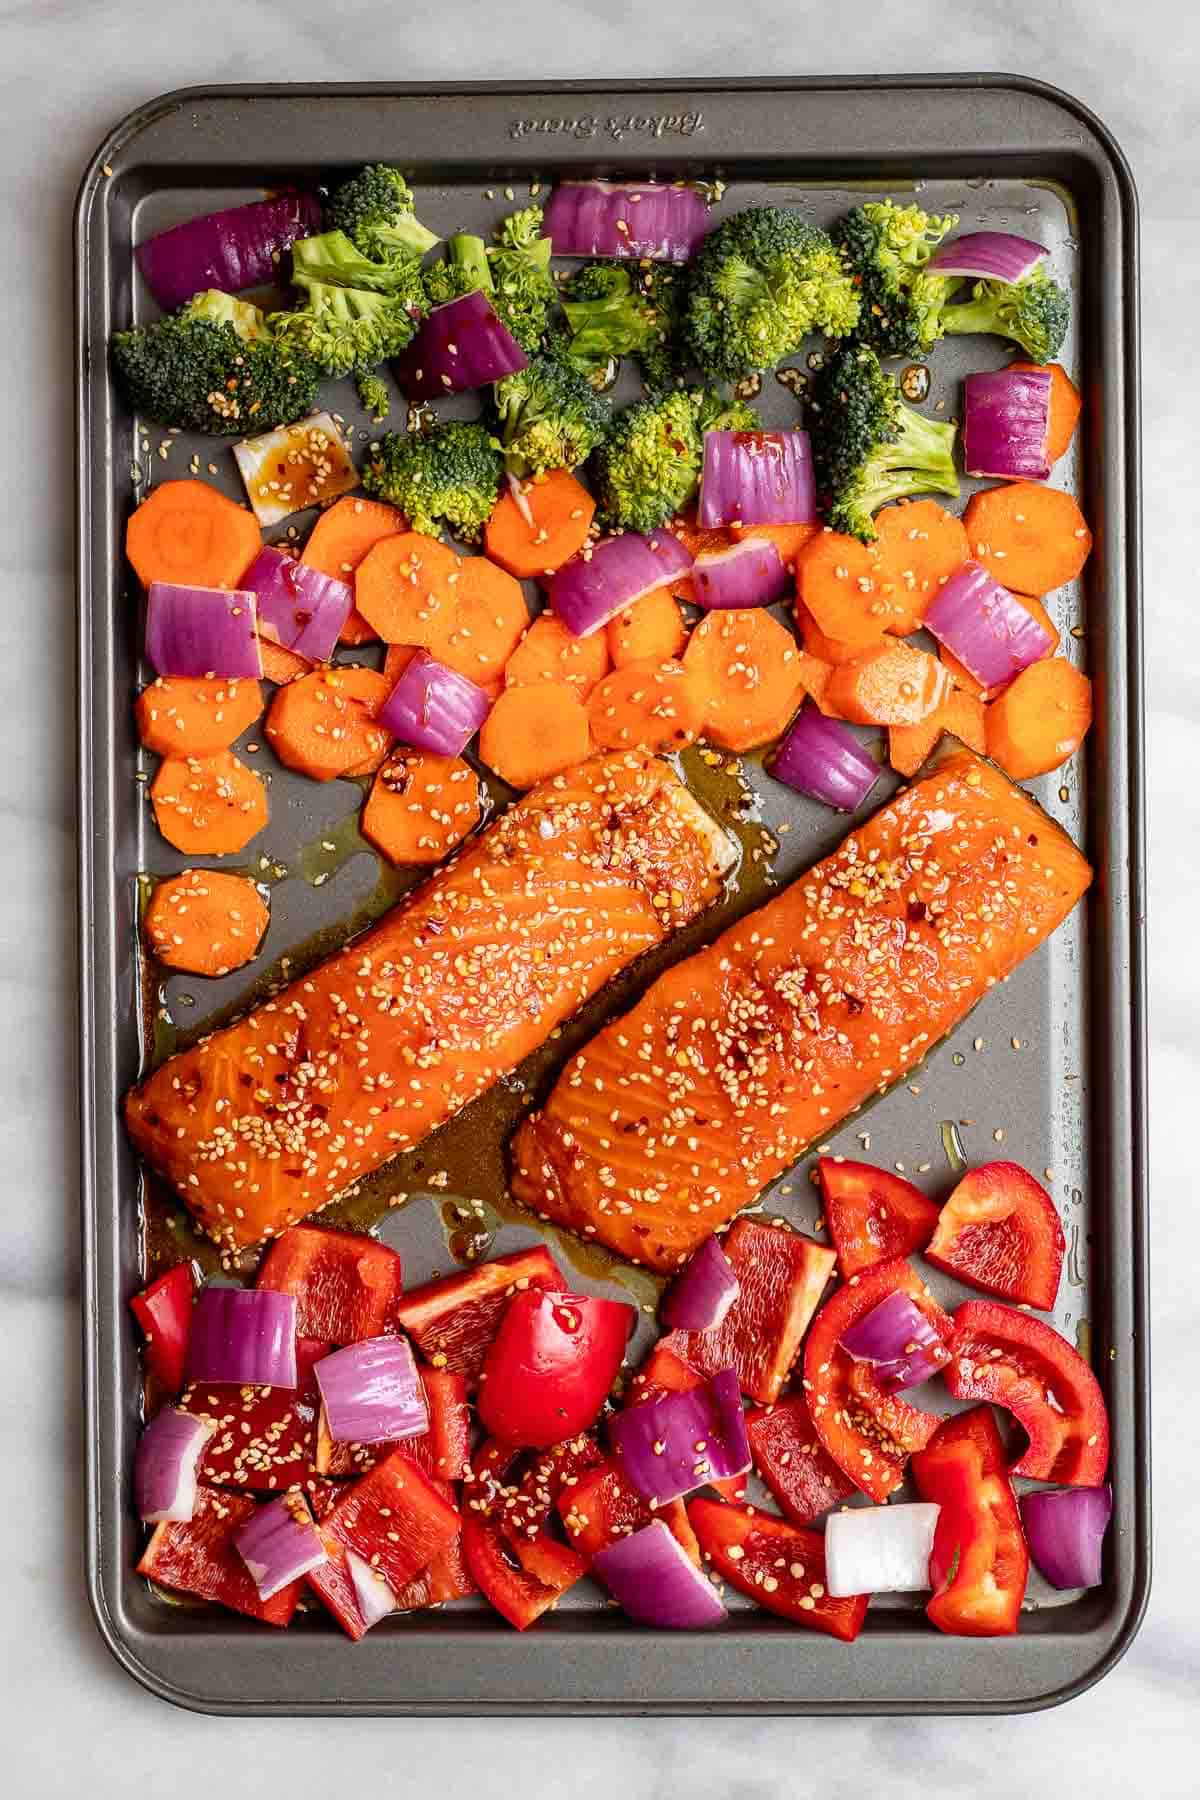 Salmon and veggies before going in the oven on a cookie sheet.